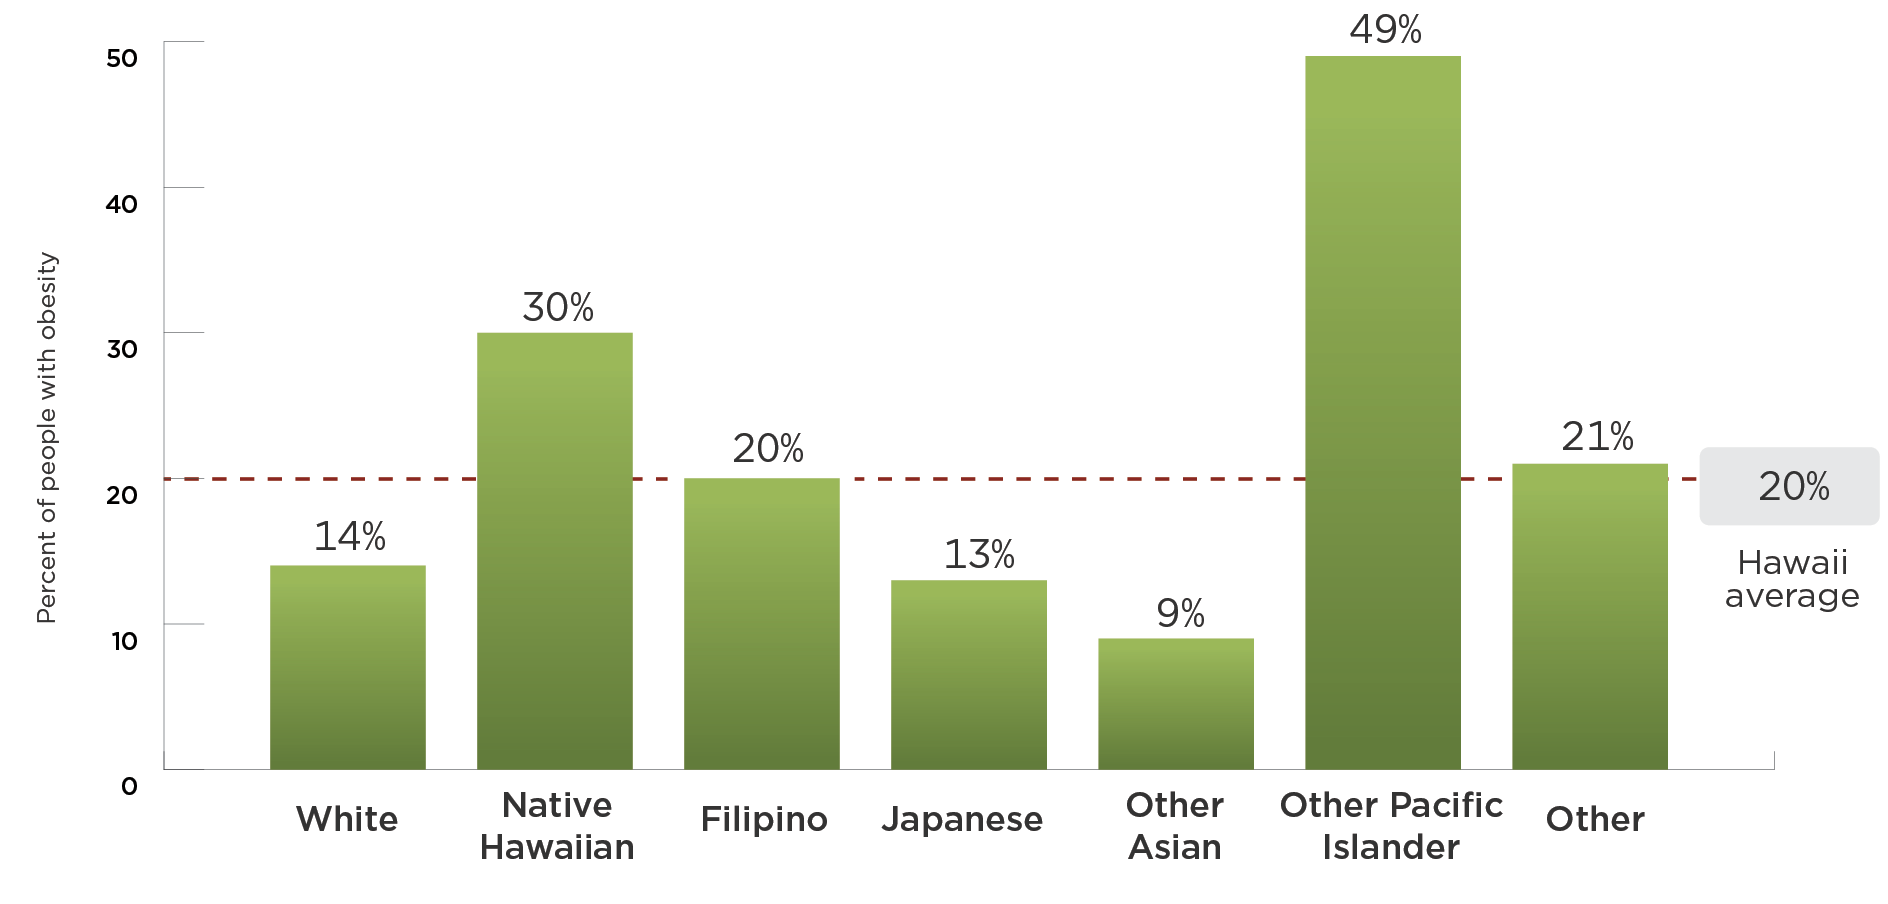 14% of White residents have obesity; 30% of Native Hawaiian residents have obesity; 20% of Filipino residents have obesity; 13% of Japanese residents have obesity; 9% of Other Asian residents have obesity; 49% of Pacific Islander residents have obesity; 21% of residents of Other races have obesity; On average, 20% of Hawaii residents have obesity